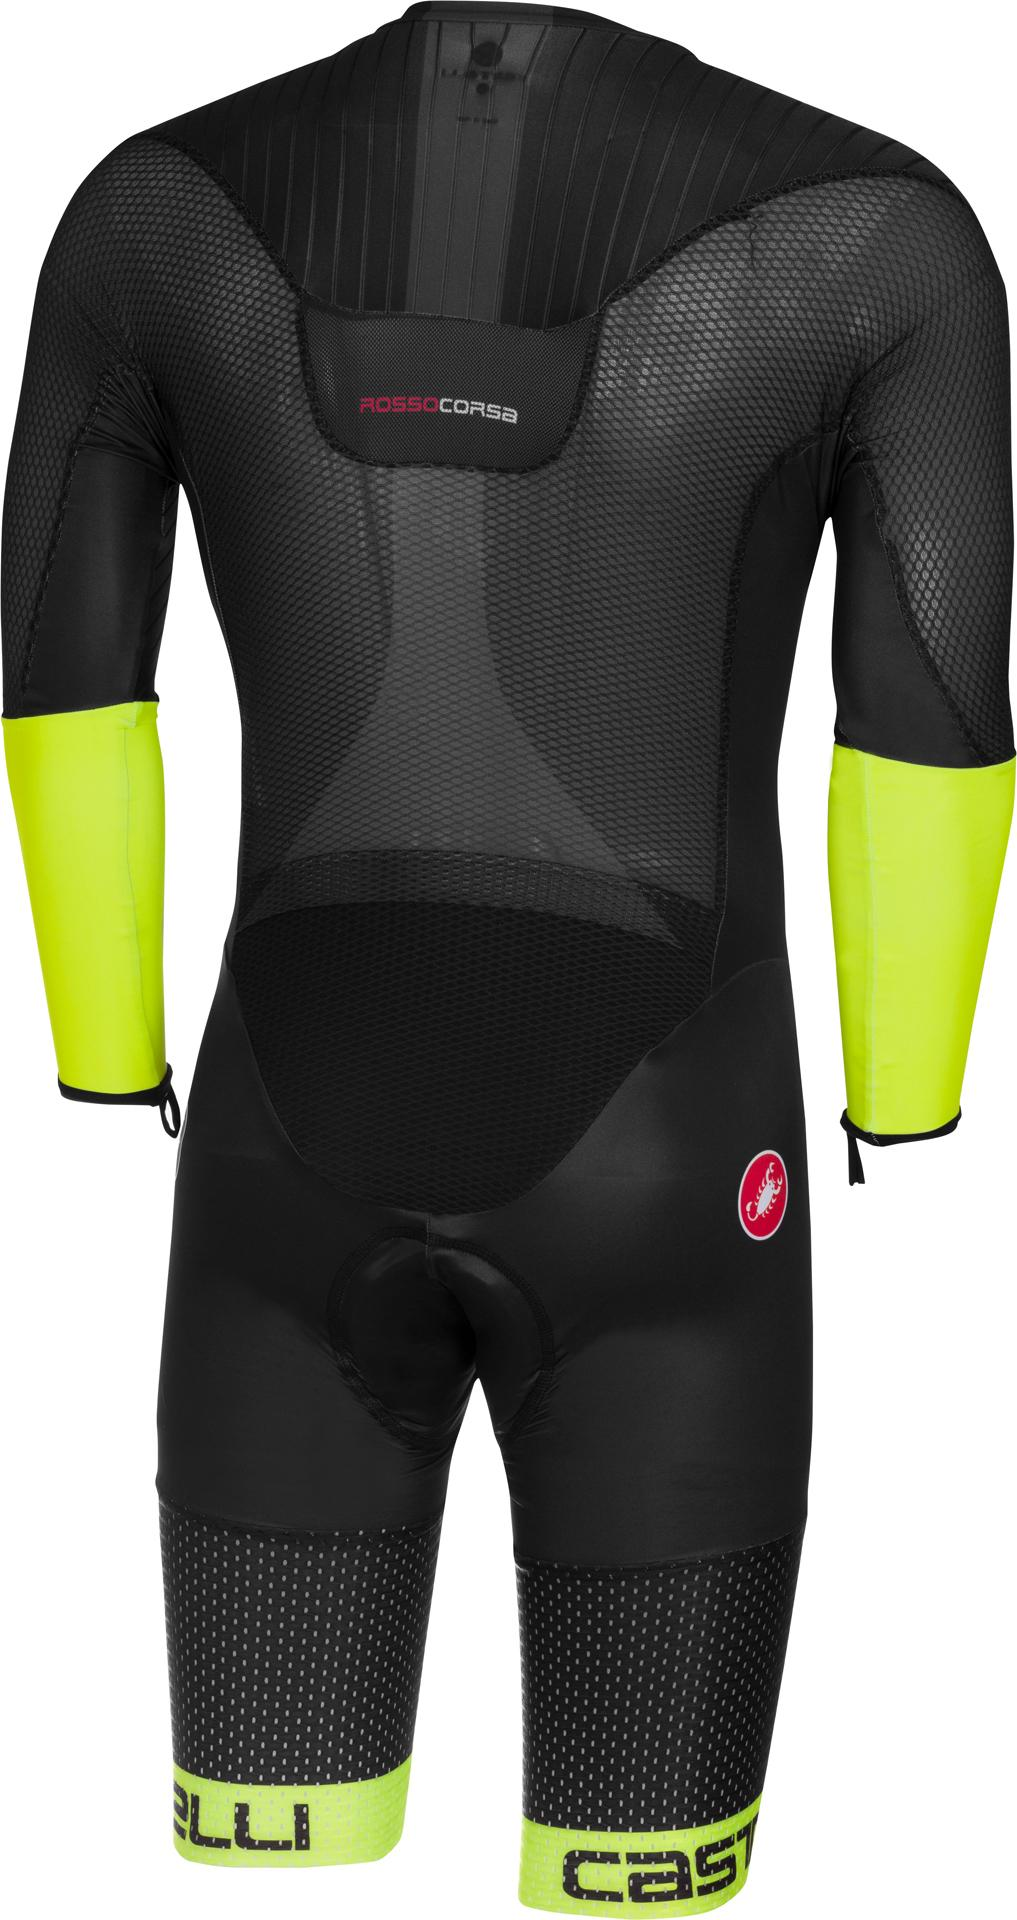 Afbeelding Castelli Snelpak Heren Zwart Fluo - CA Body Paint 3.3 Speed Suit LS-Black/Yellow Fluo